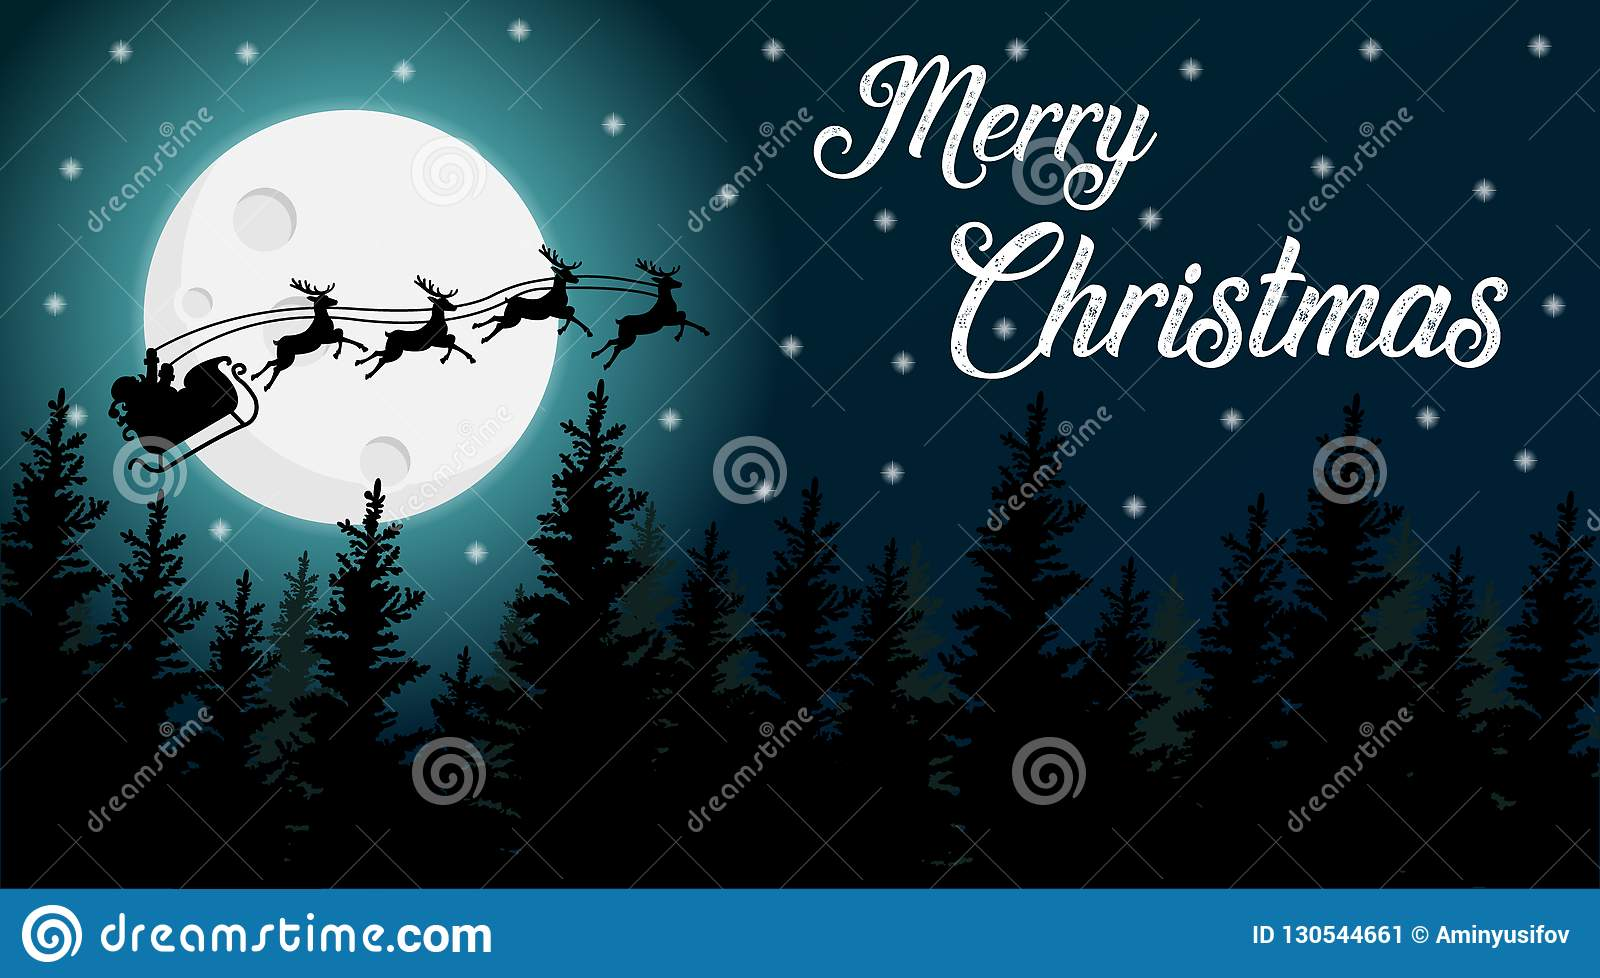 merry christmas vector poster happy new year banner christmas background xmas party vector illustration